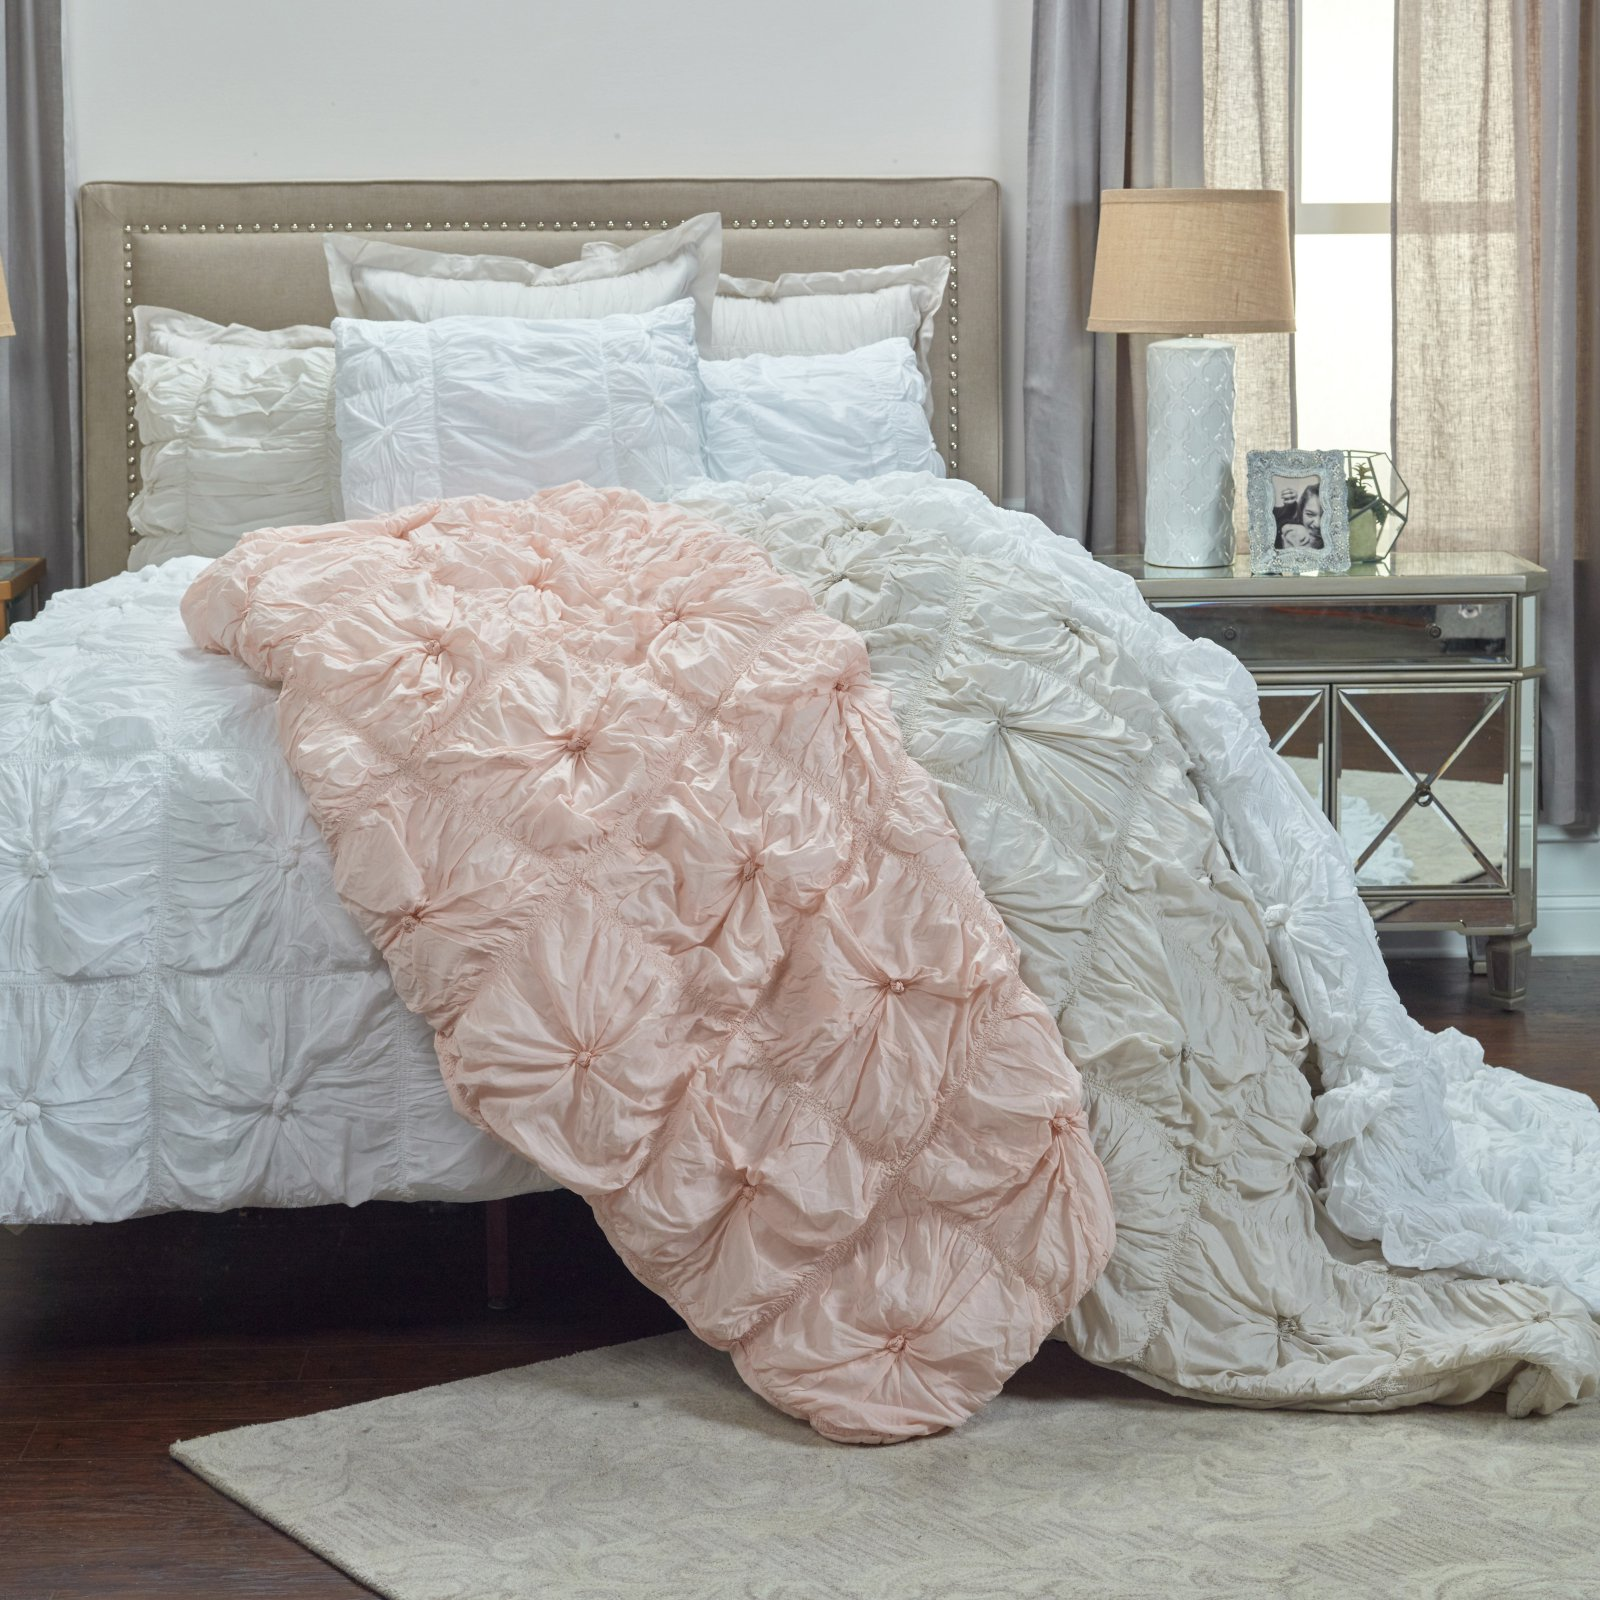 Soft Dreams 2-3 Piece Bedding Set by Rizzy Home